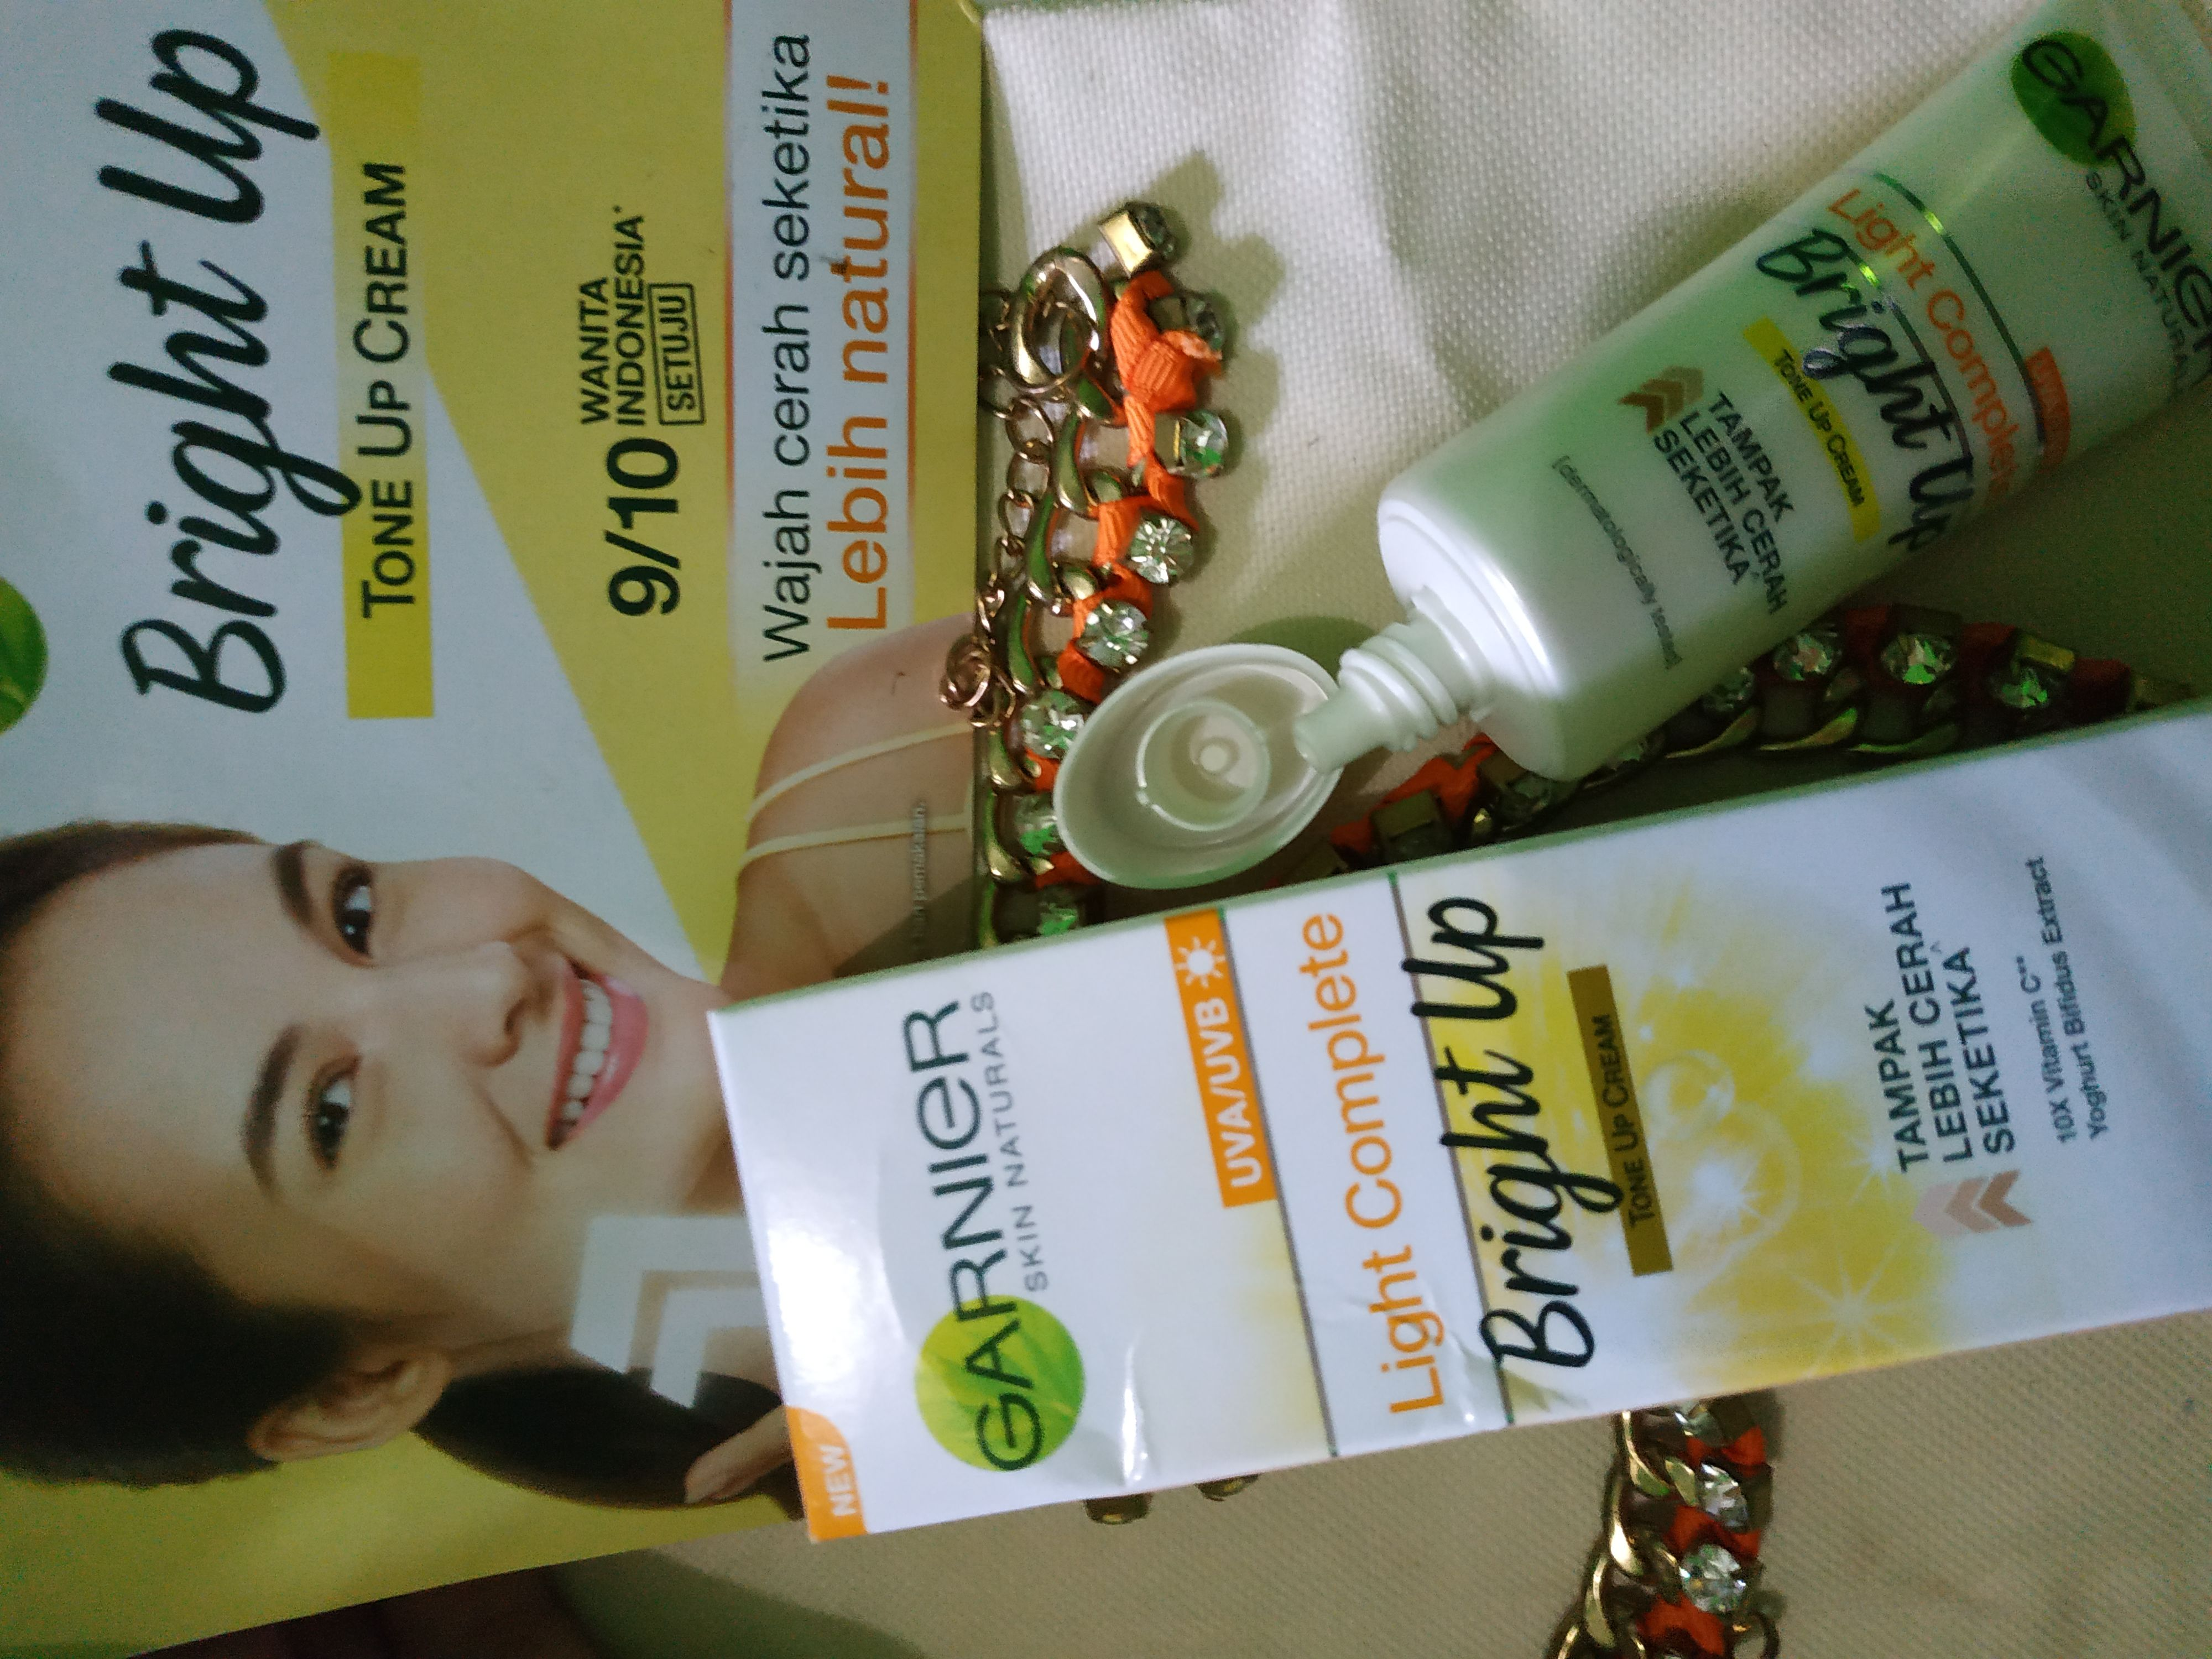 gambar review ke-10 untuk Garnier Light Complete Bright Up Tone Up Cream